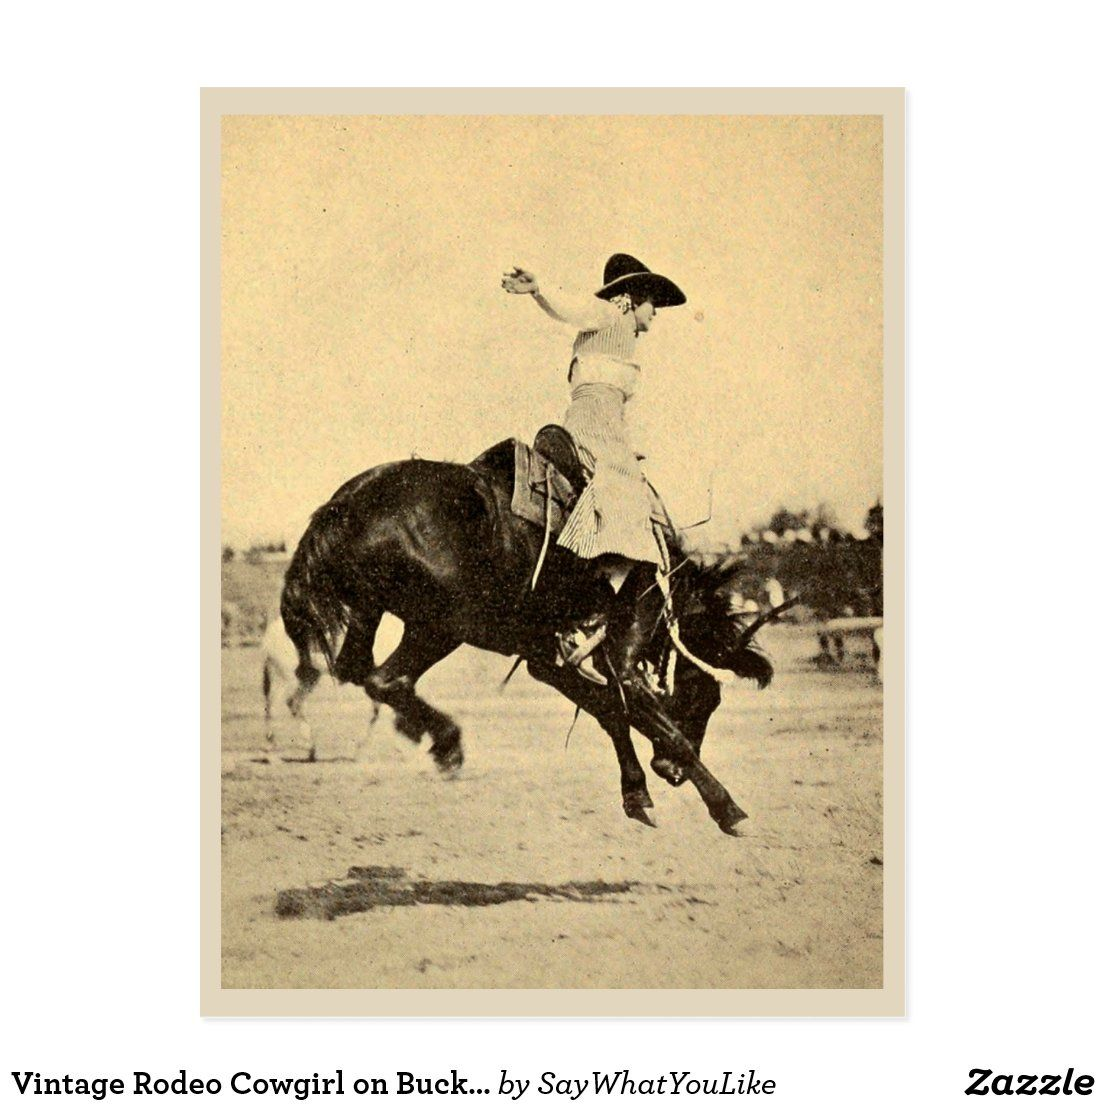 Vintage Rodeo Cowgirl On Bucking Horse Photo Postcard Zazzle Com Rodeo Cowgirl Photo Postcards Horse Photos